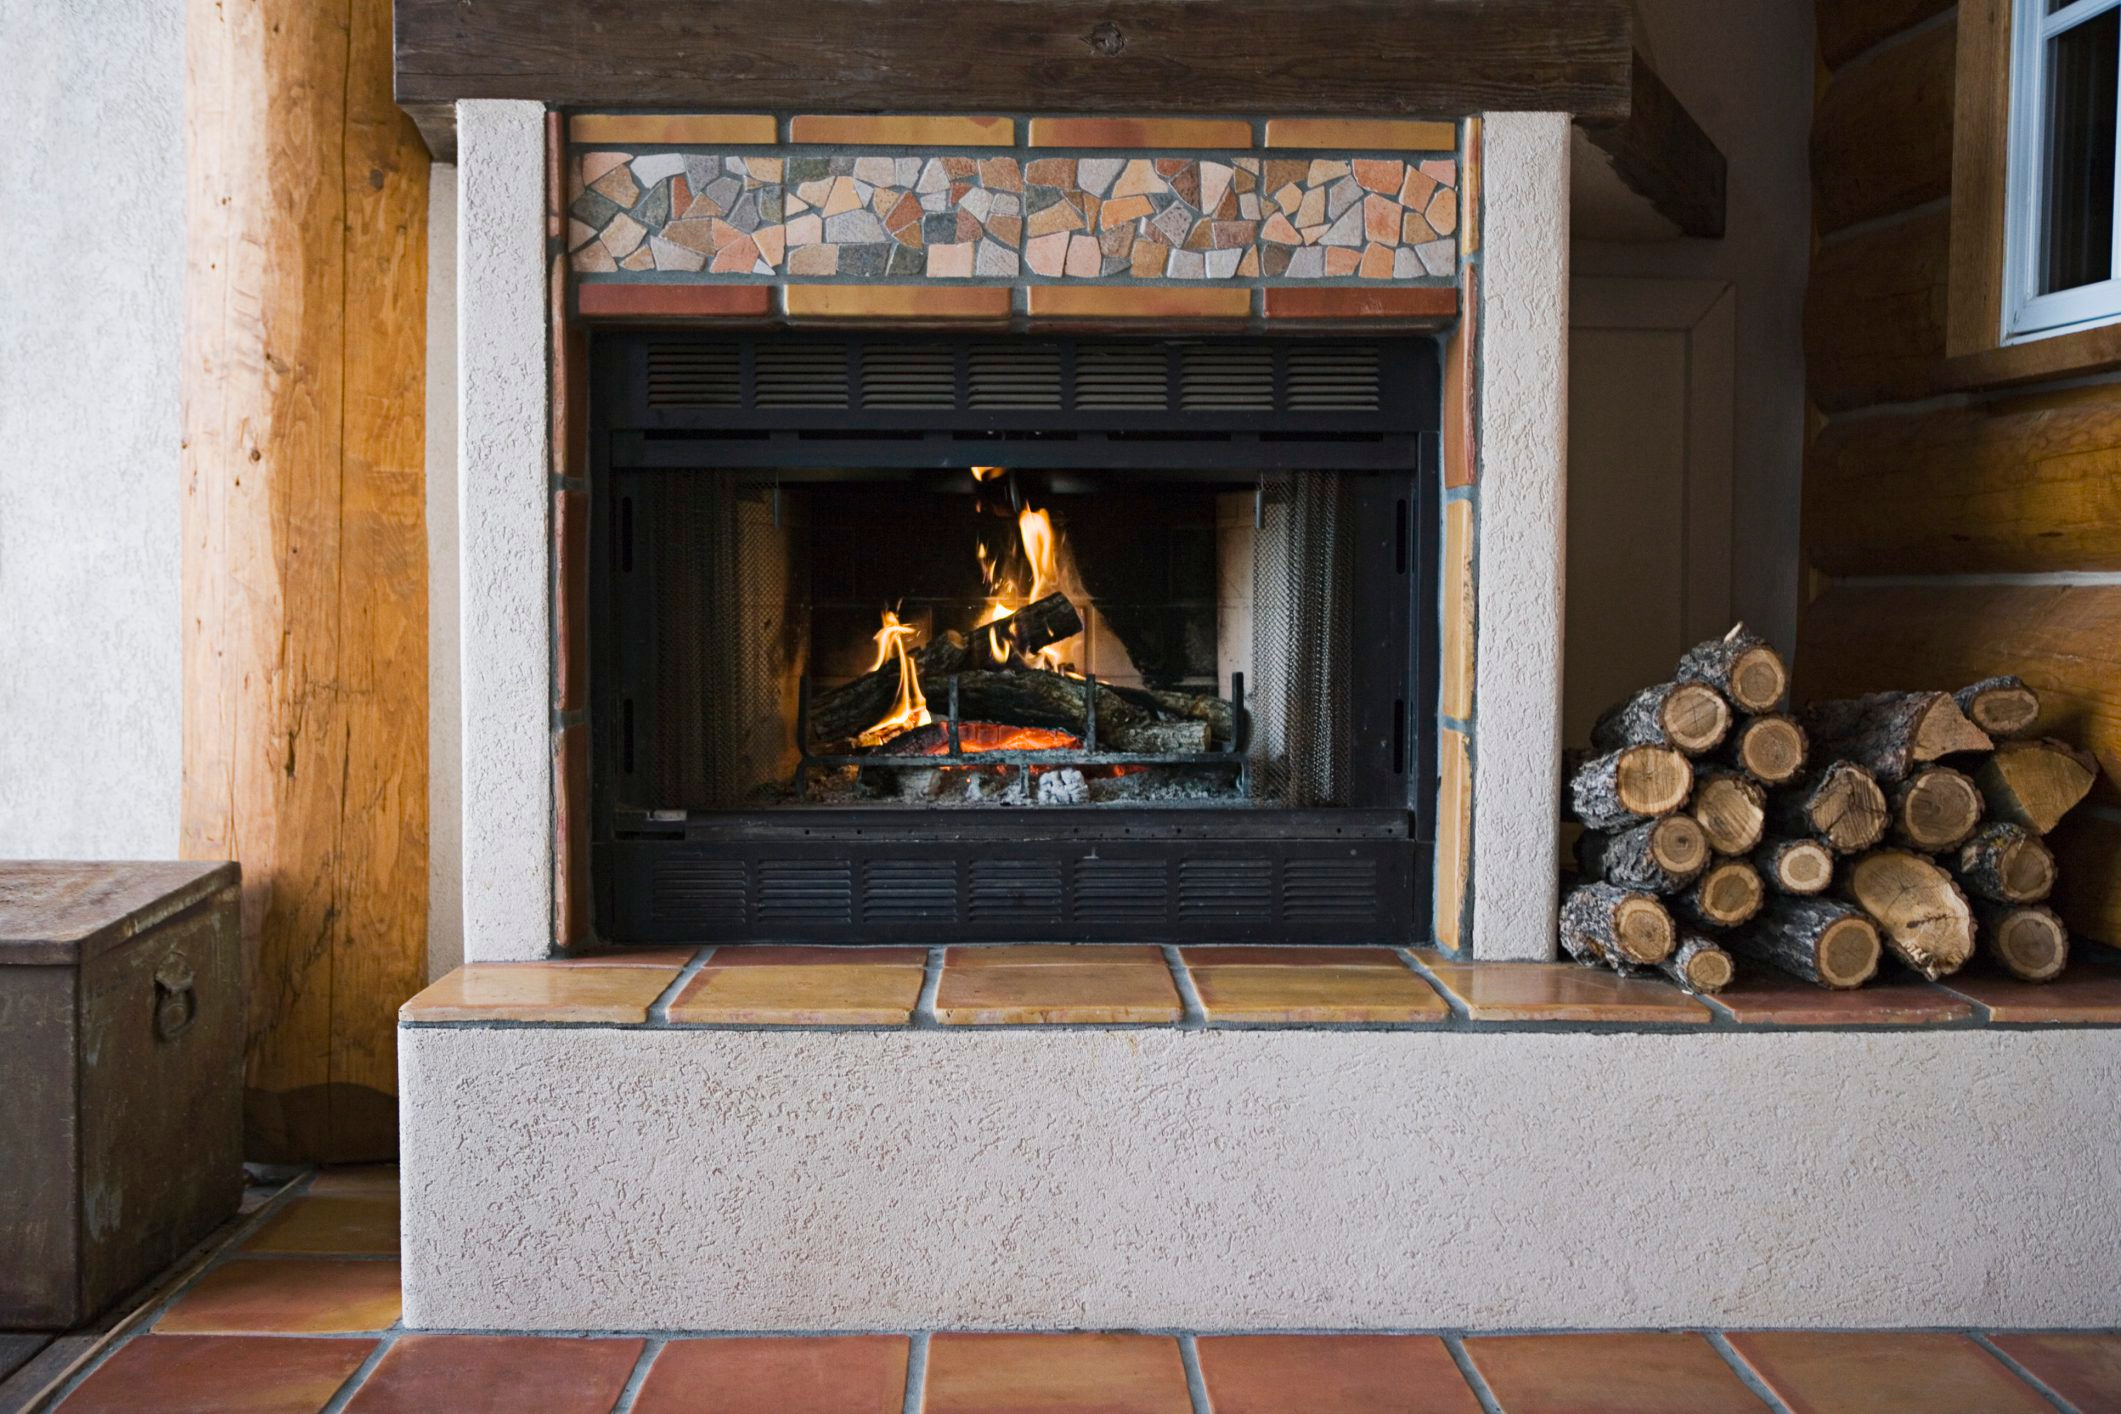 How To Make A Cement Hearth Making A Cement Hearth Is An Easy Way To Create A Hearth That S Strong Stable And Most Import Marble Fireplaces Fireplace Hearth